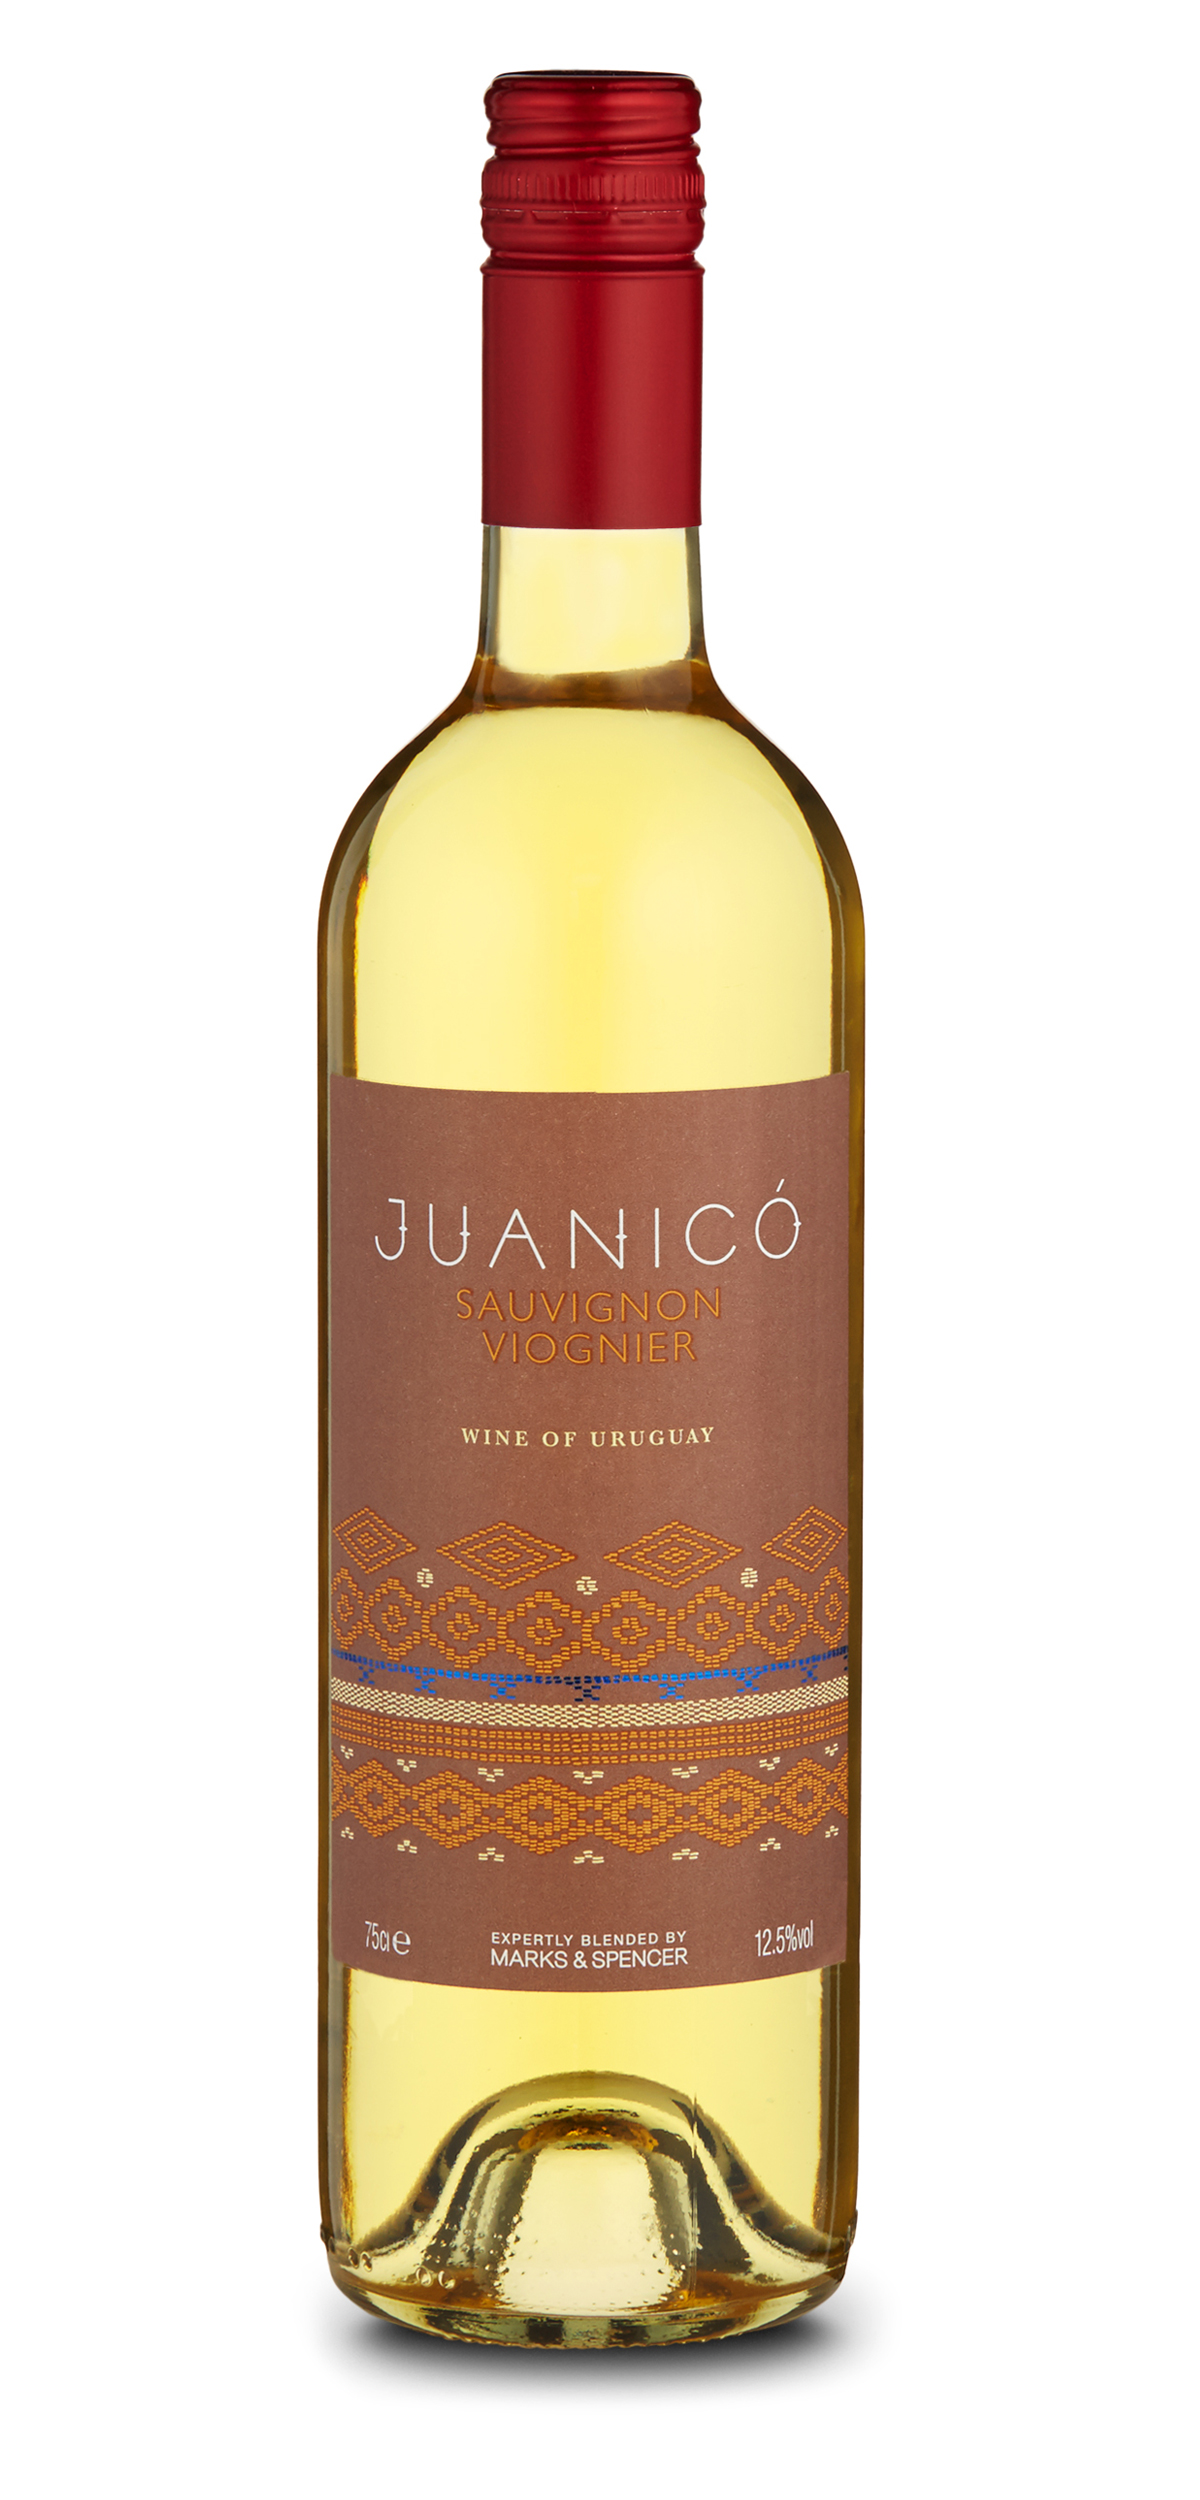 MS Juanico wine bottle design